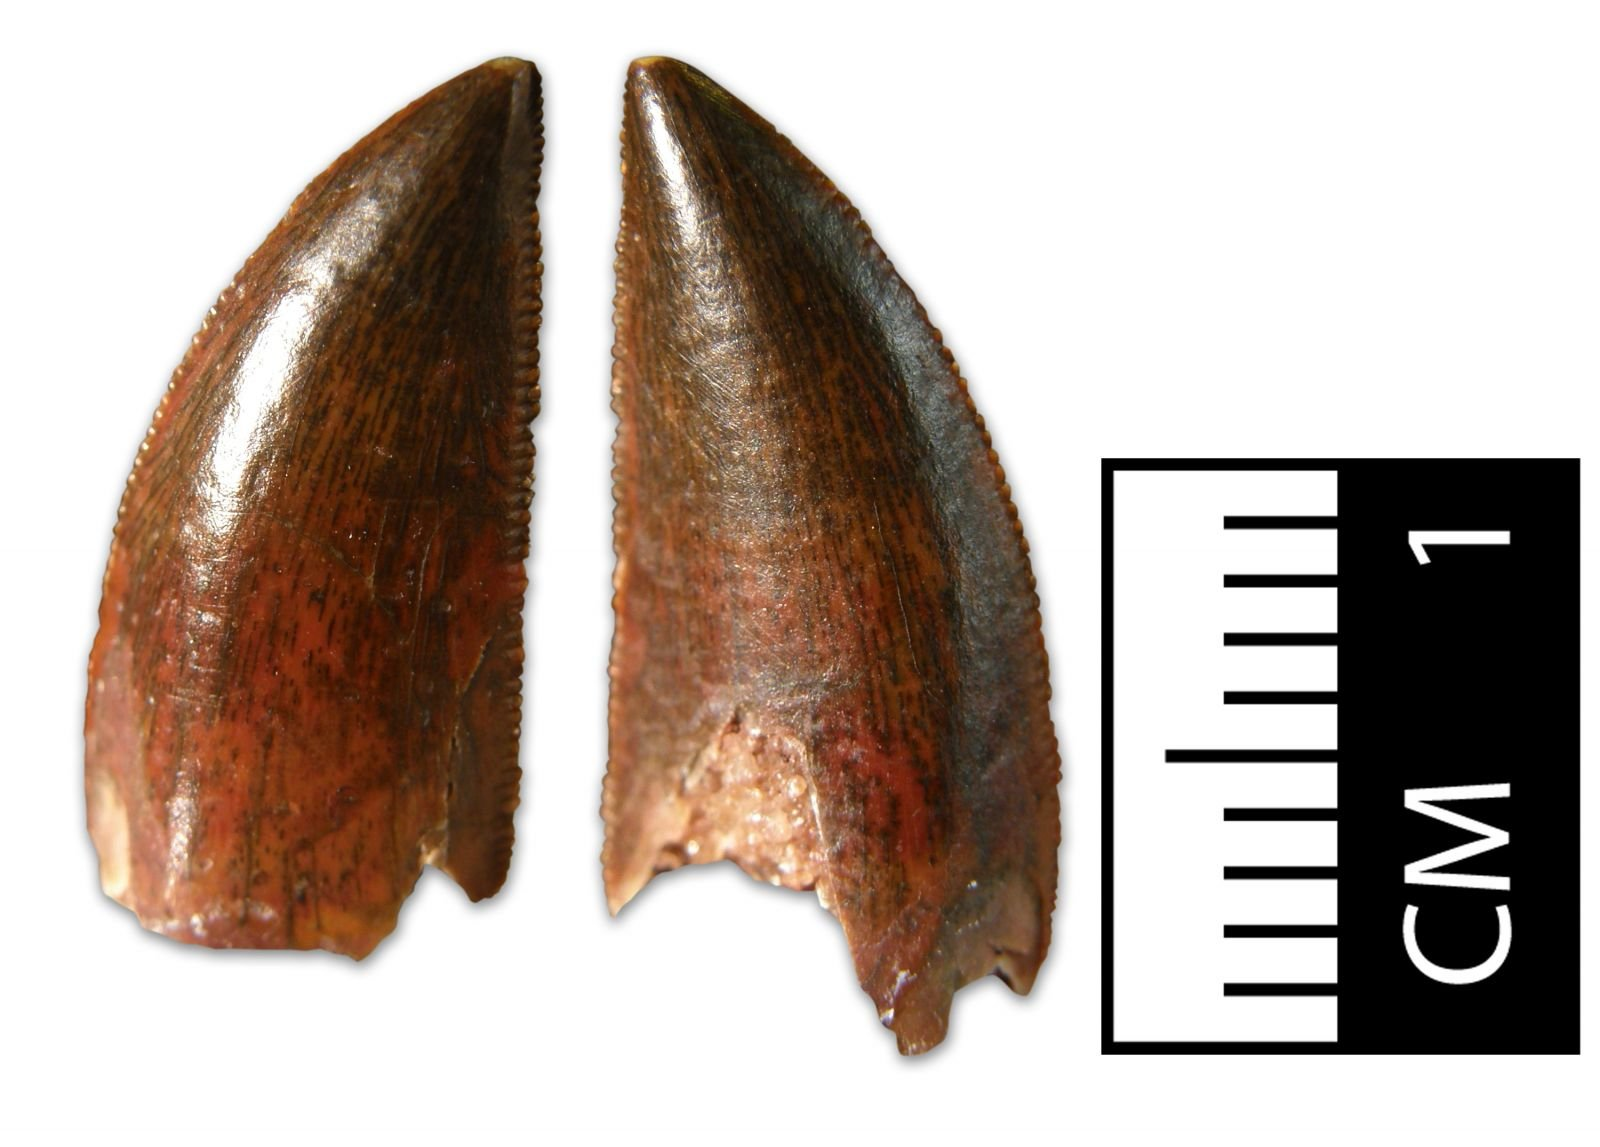 Abelisaurid Tooth